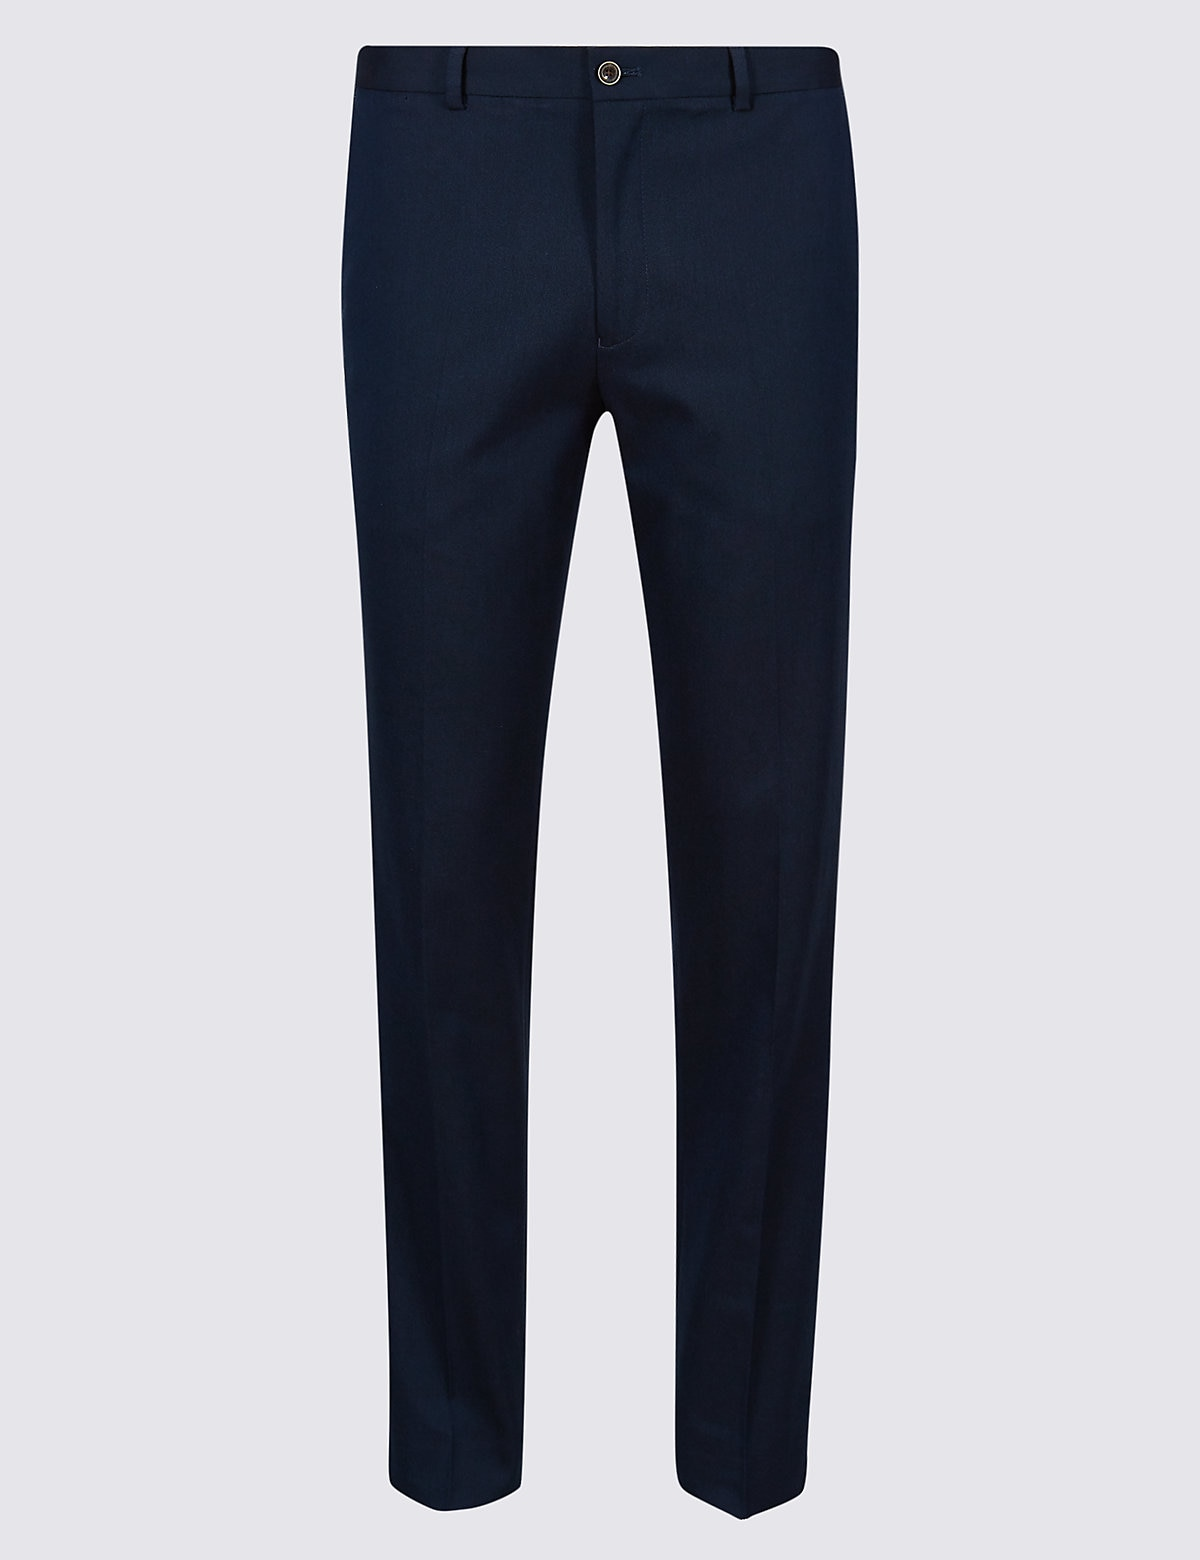 Marks & Spencer Navy Tailored Fit Trousers